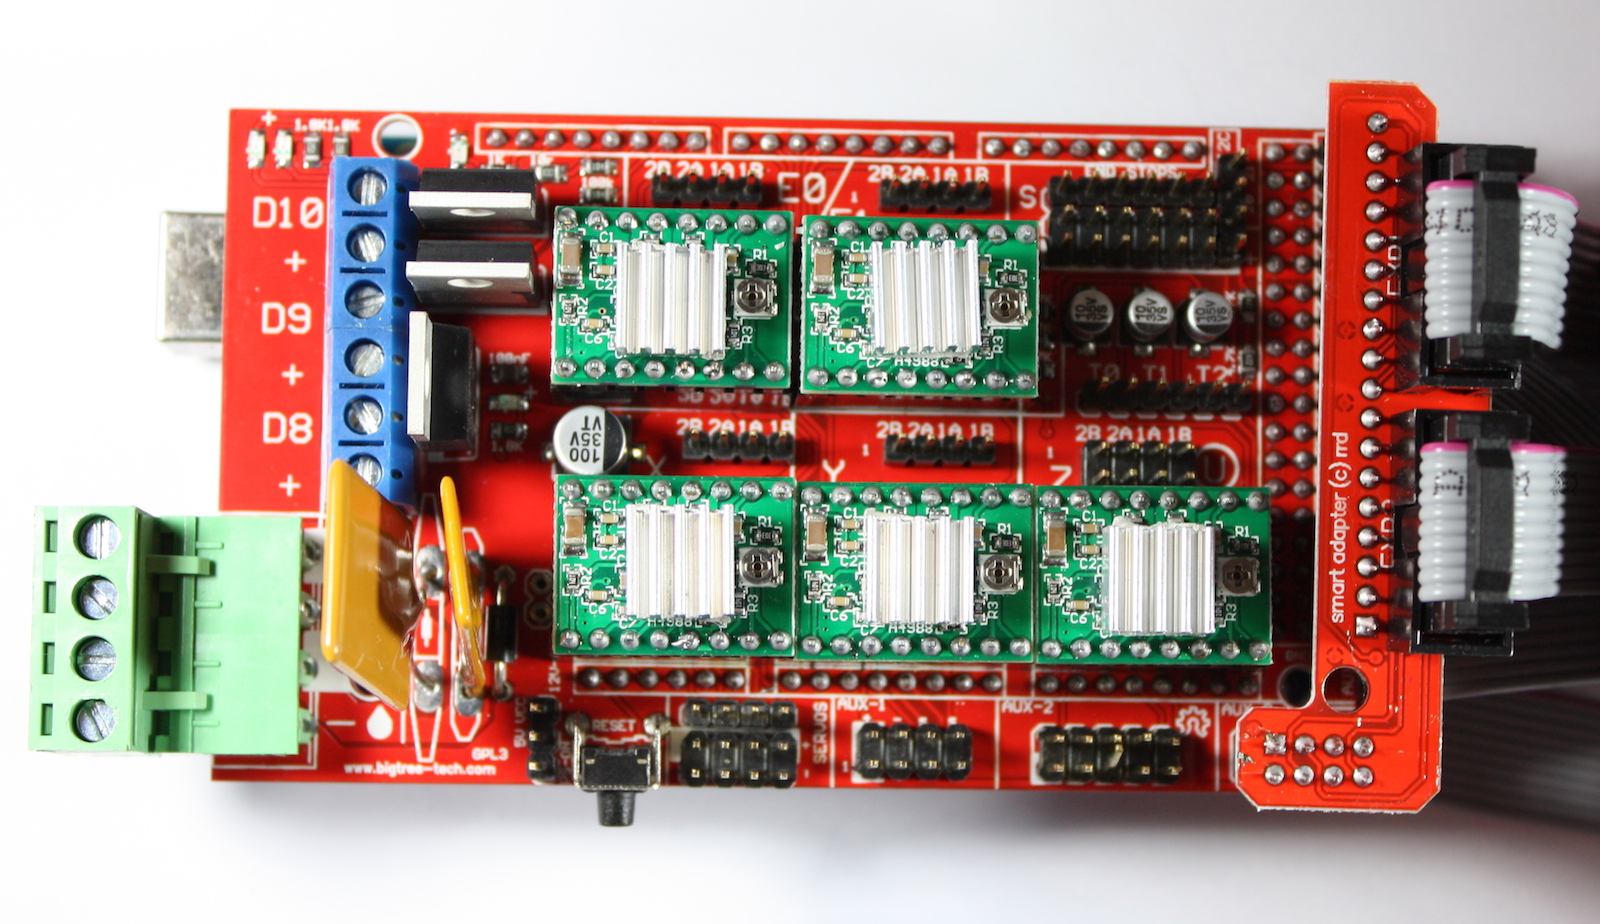 R s 1 4 Kit Shield Mega 2560 5x A4988 12864 Lcd Reprap 3d Printer also 2031 together with Mega Sensor Shield For Arduino Mega further Quand Un Miroir Devient Un Smart Mirror in addition Viewtopic. on raspberry pi lcd